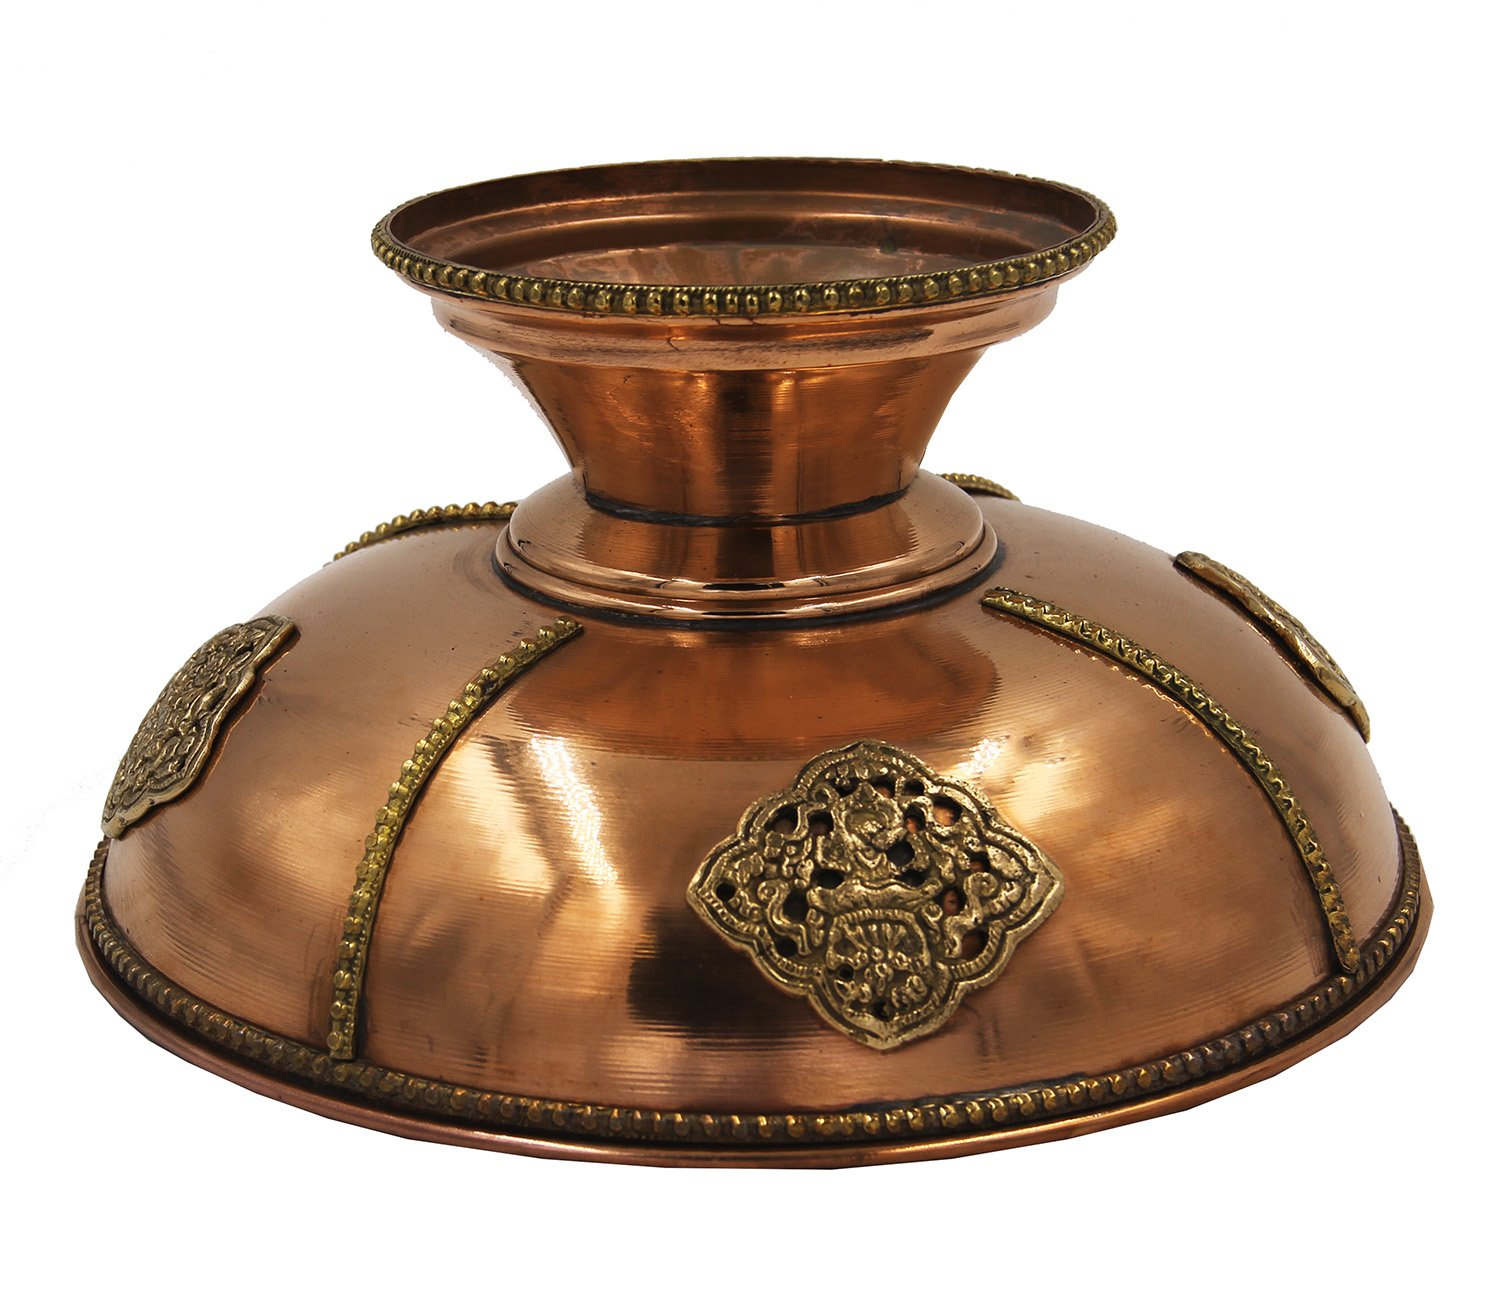 Copper, 12 Diameter X 5 Tall DharmaObjects Tibetan Hand Crafted Decorative Copper Fruit Bowl